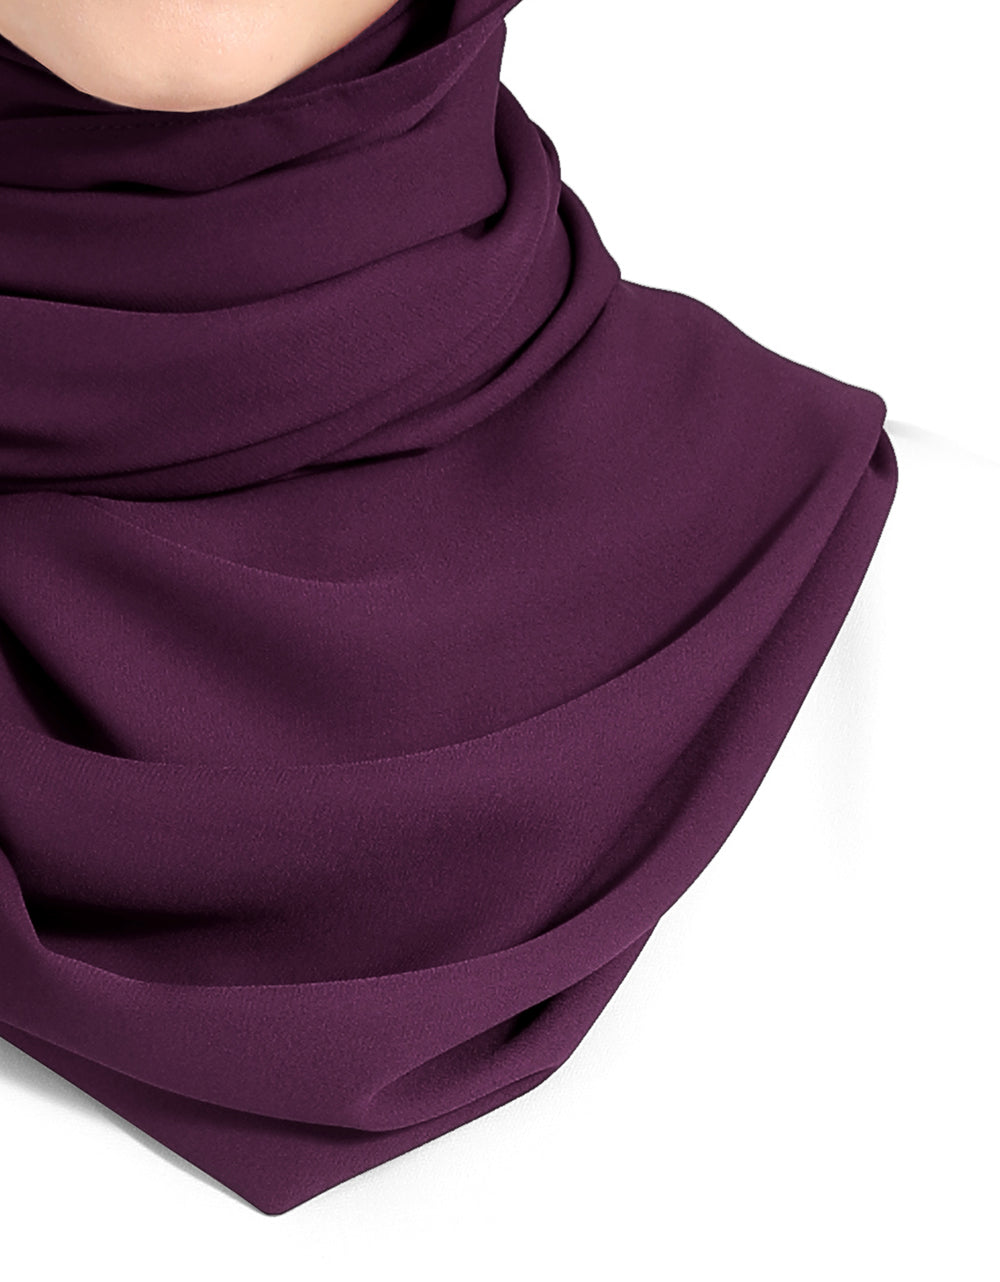 Double Georgette Chiffon Shawl Col. 63 (Violet)